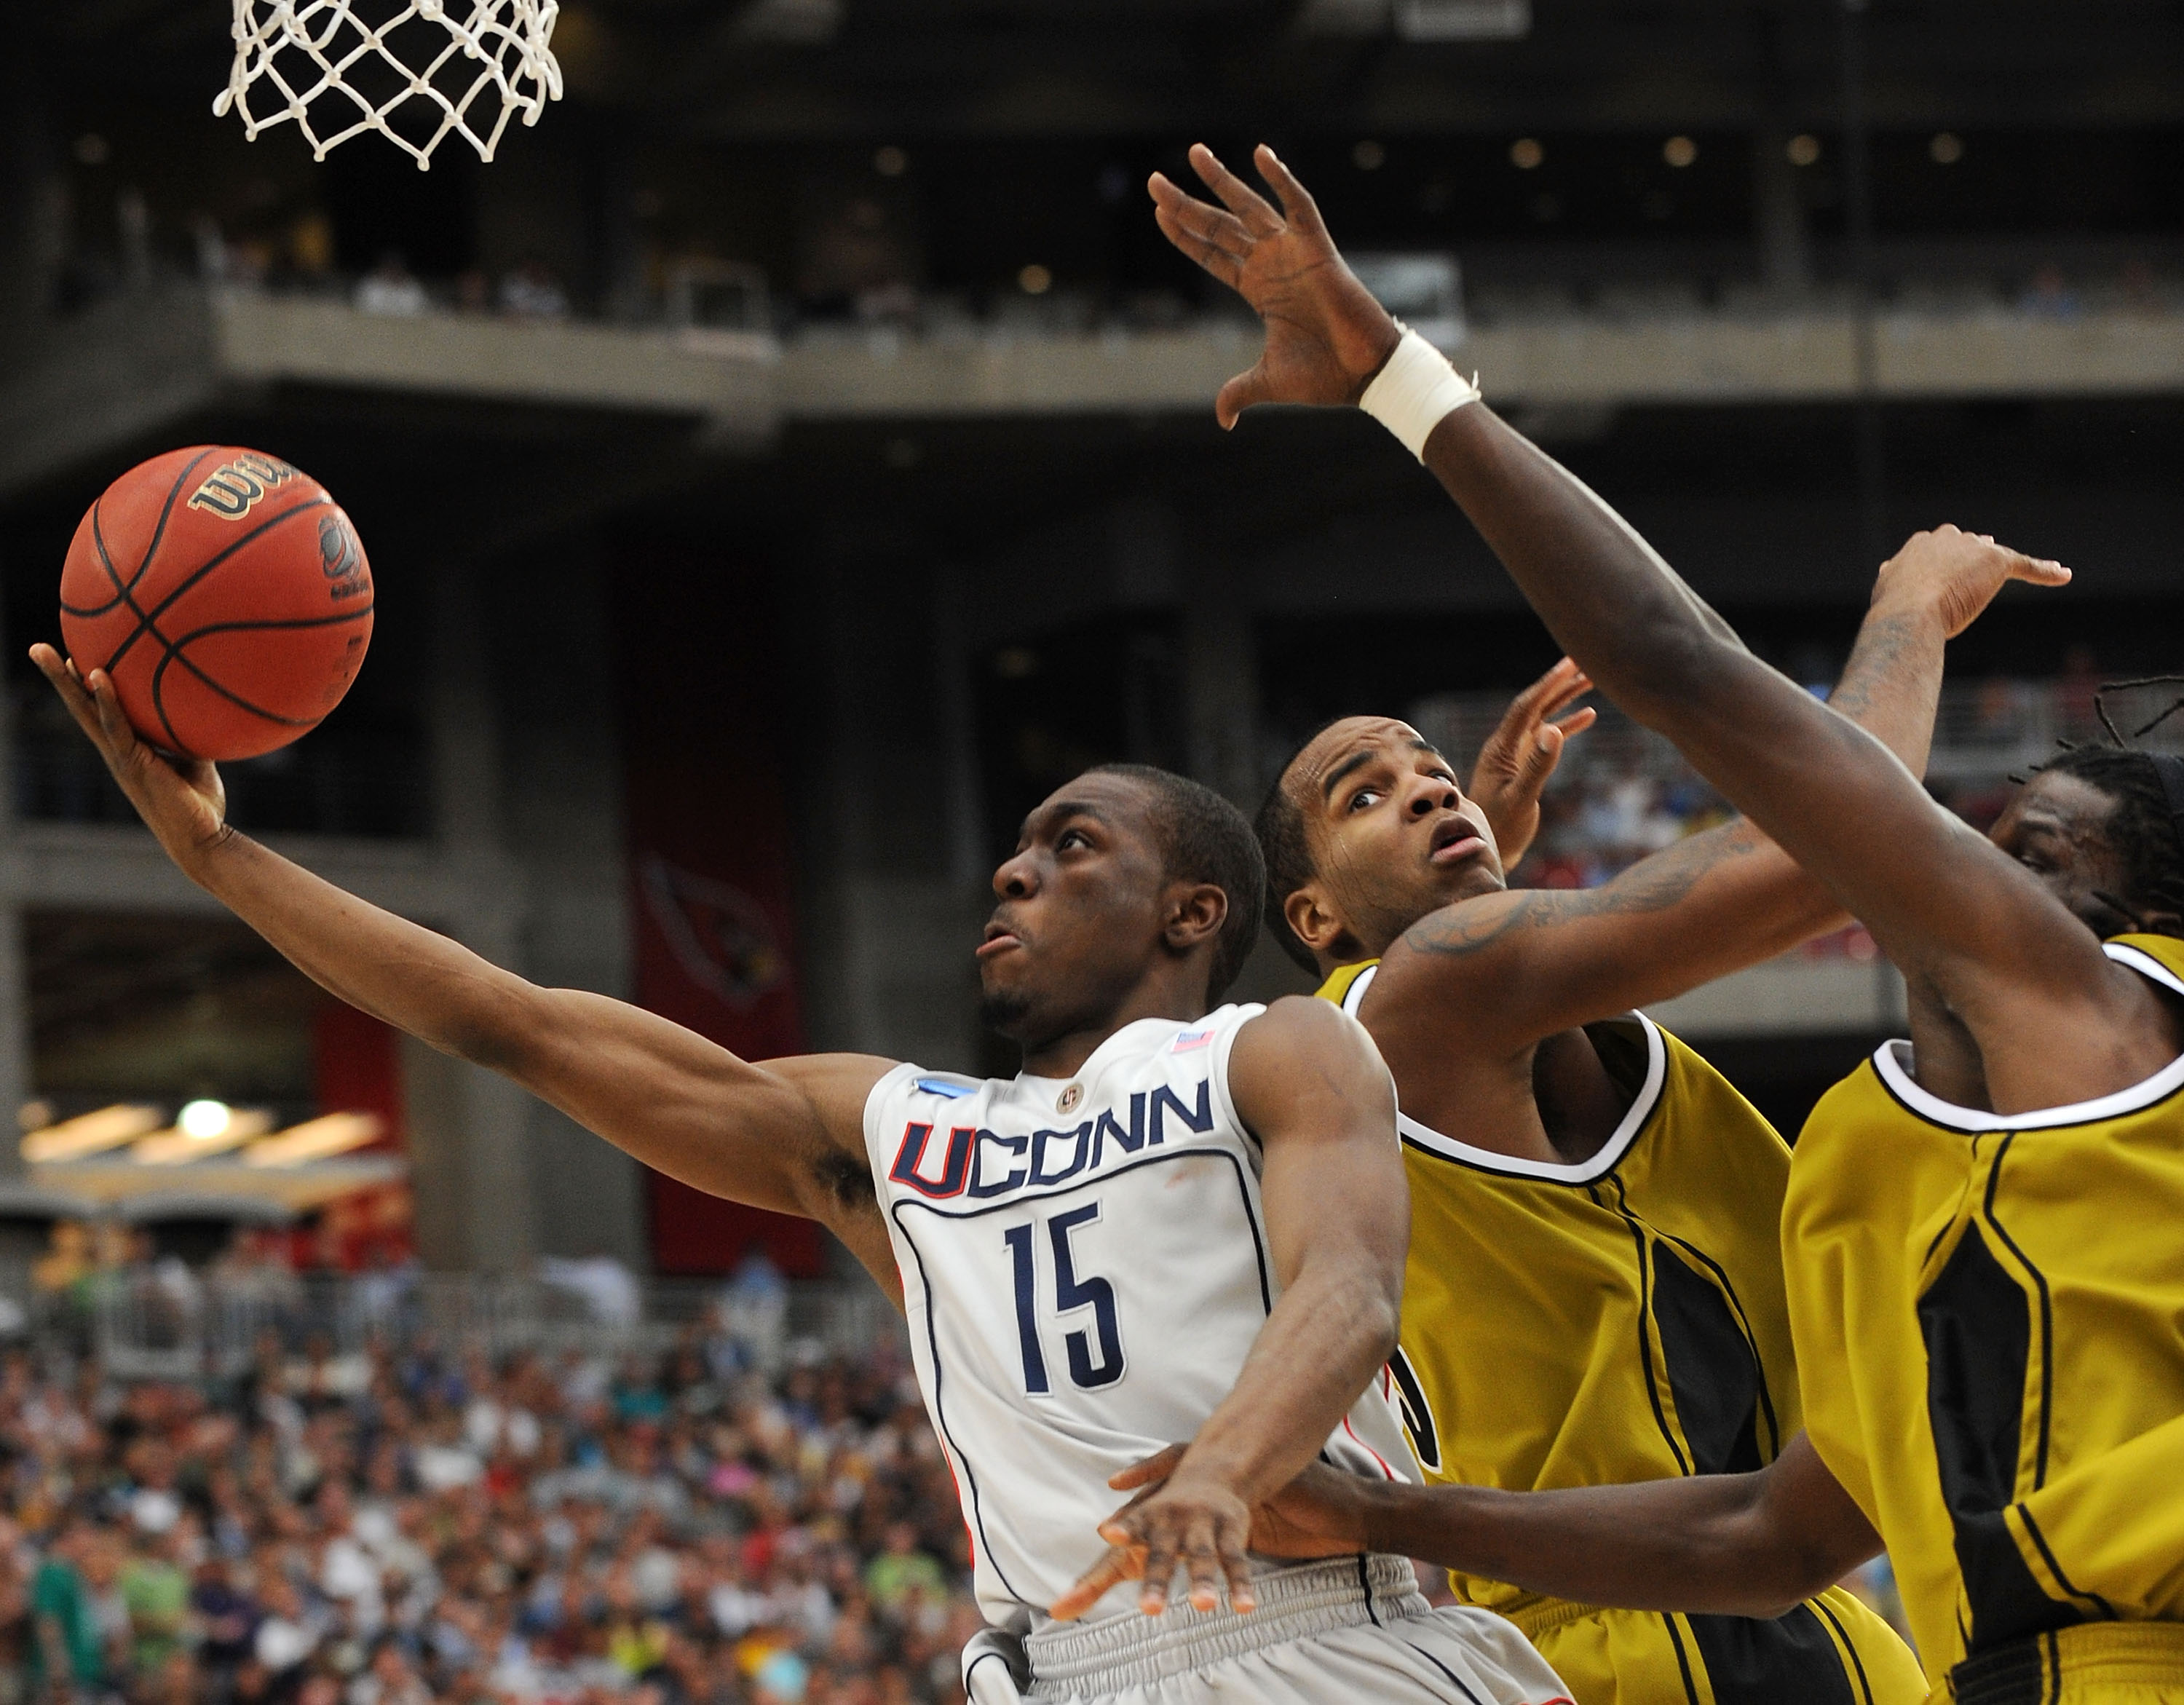 UConn Basketball: What's Wrong With the Huskies' Kemba Walker